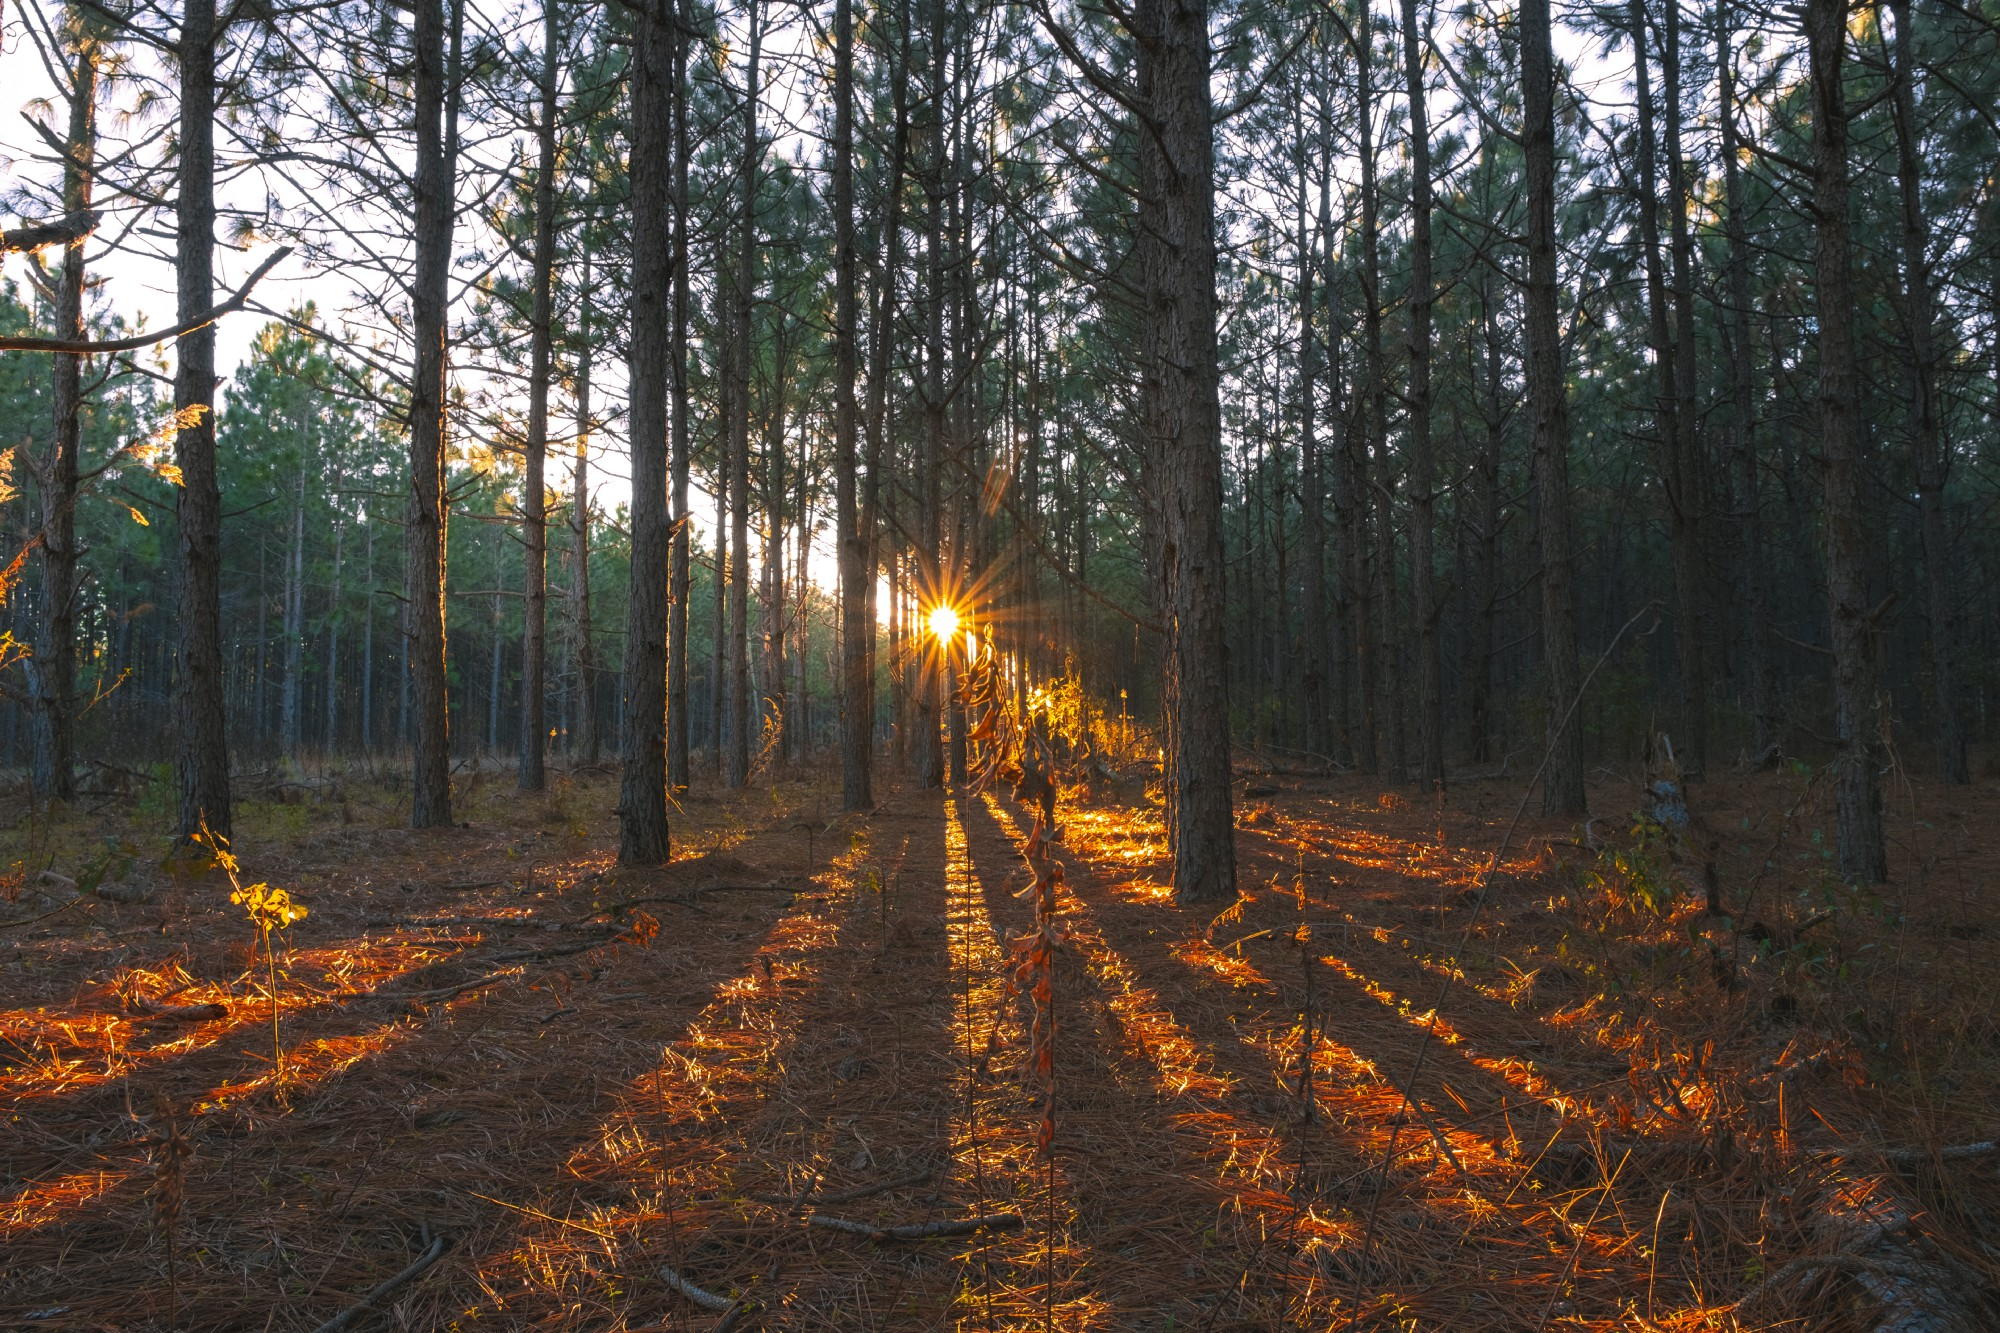 Sunrise shining in dramatic rays through trees onto the forest floor on a bright sunny day.